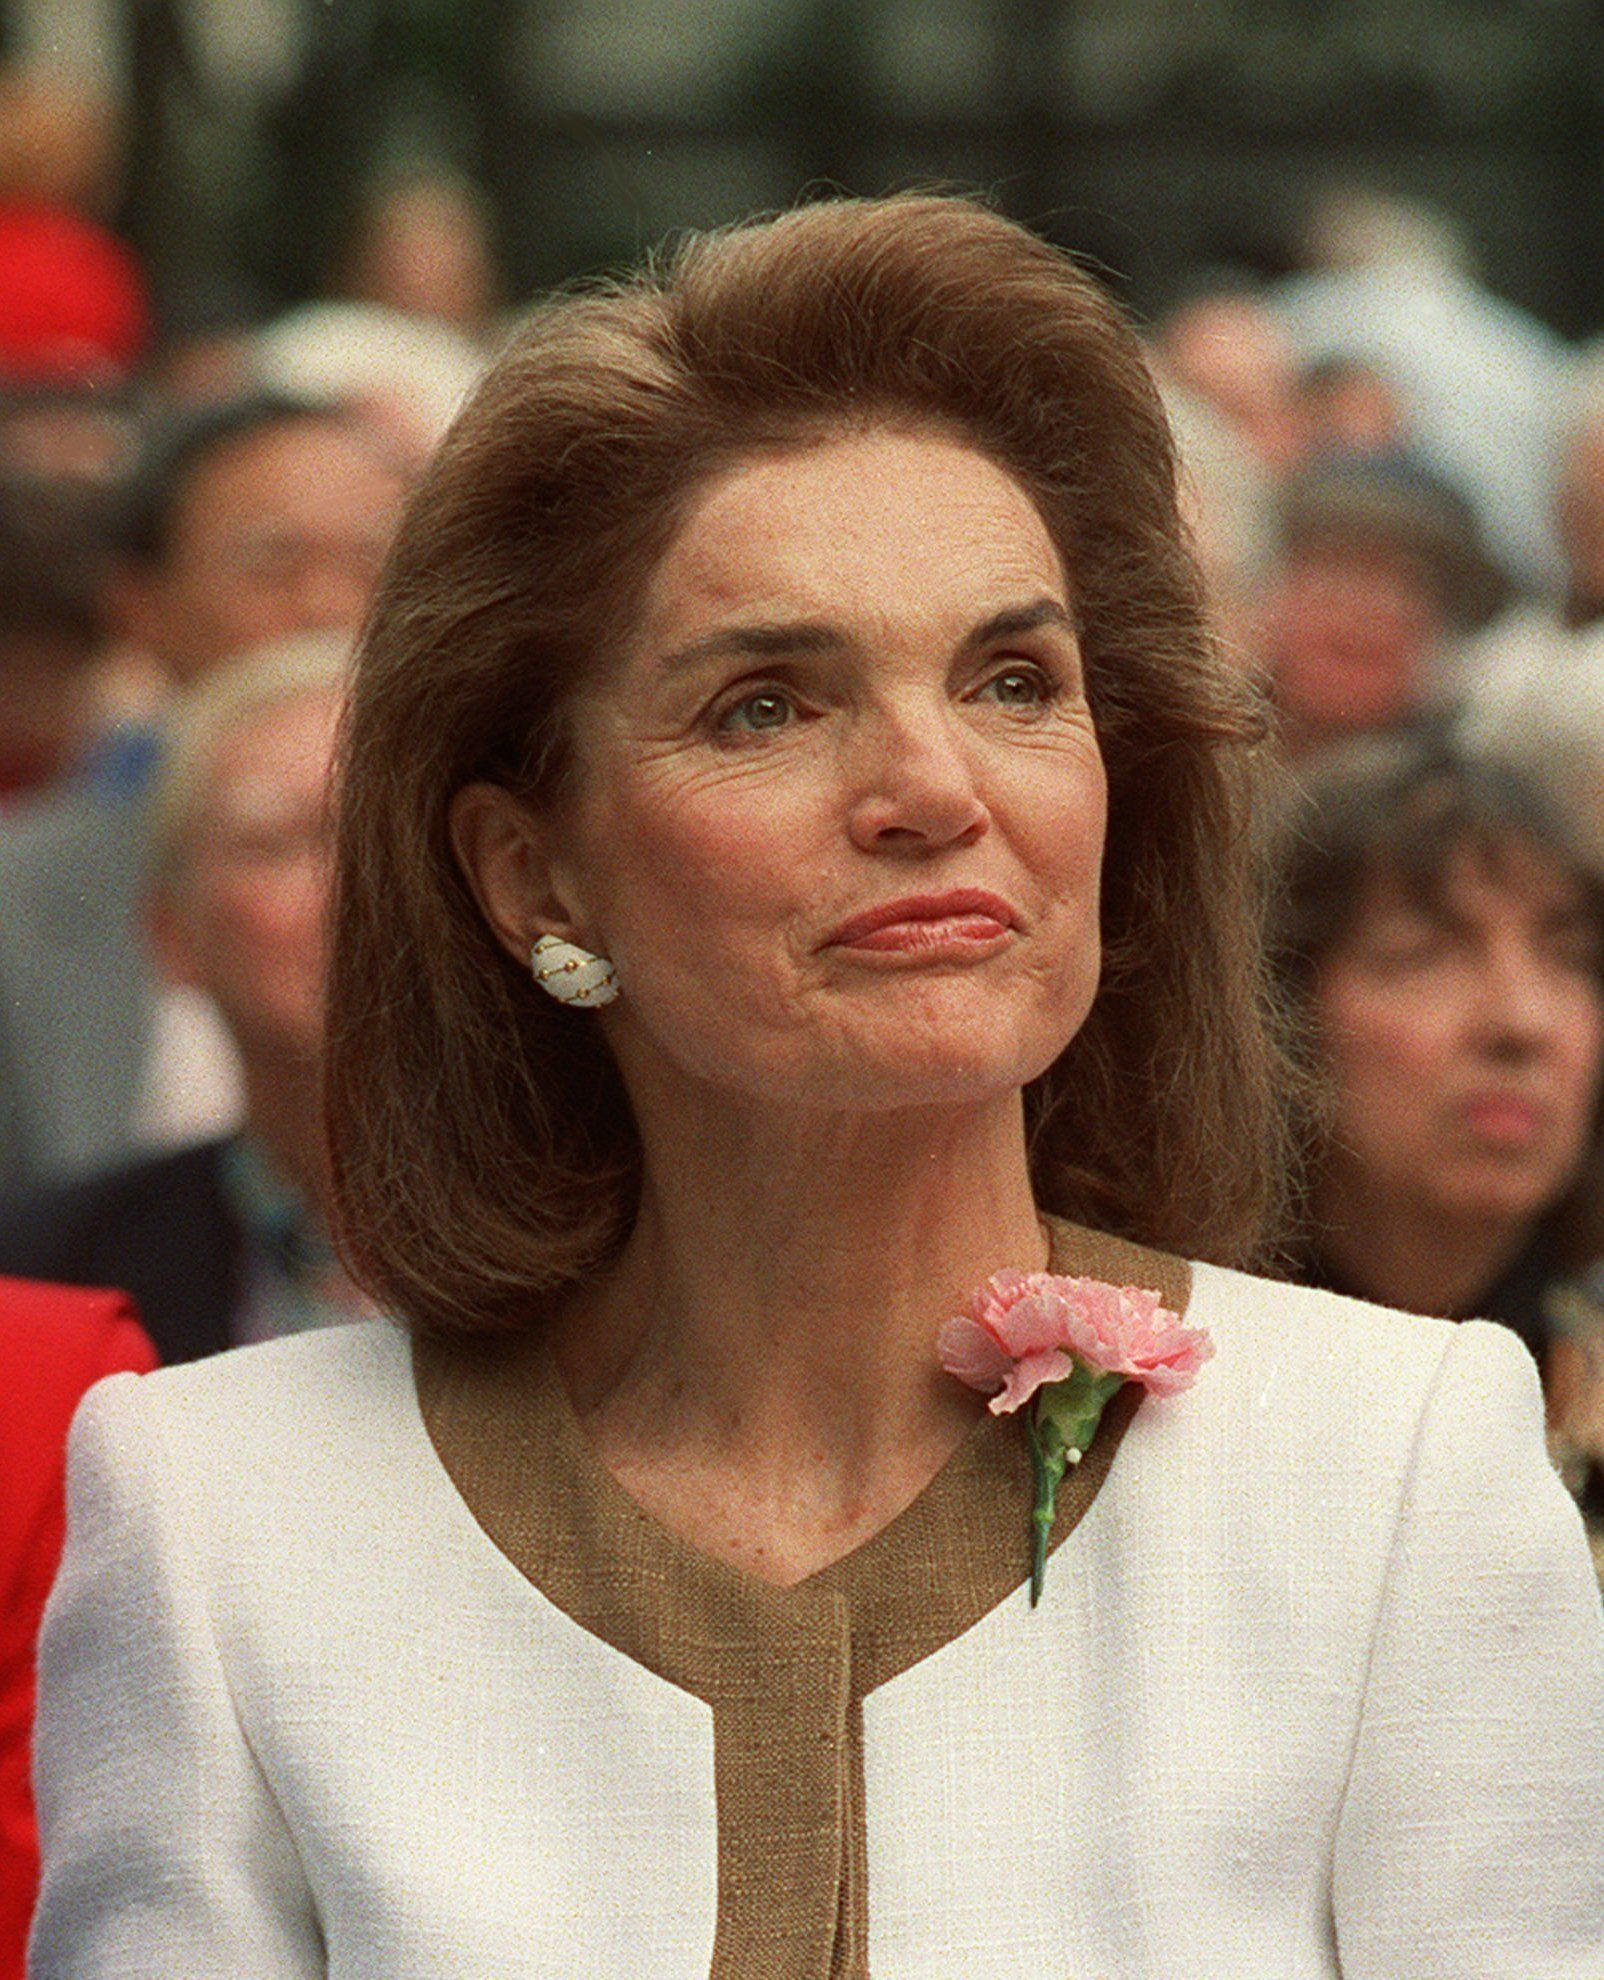 Jacqueline Kennedy Onassis is shown in New York in this 1992 photo. The frenzied four-day auction of Camelot souvenirs, White House history, and the glamour of Jacqueline Kennedy Onassis finally came to an end Friday night, April 26. 1996, taking in a total of $34.5 million.